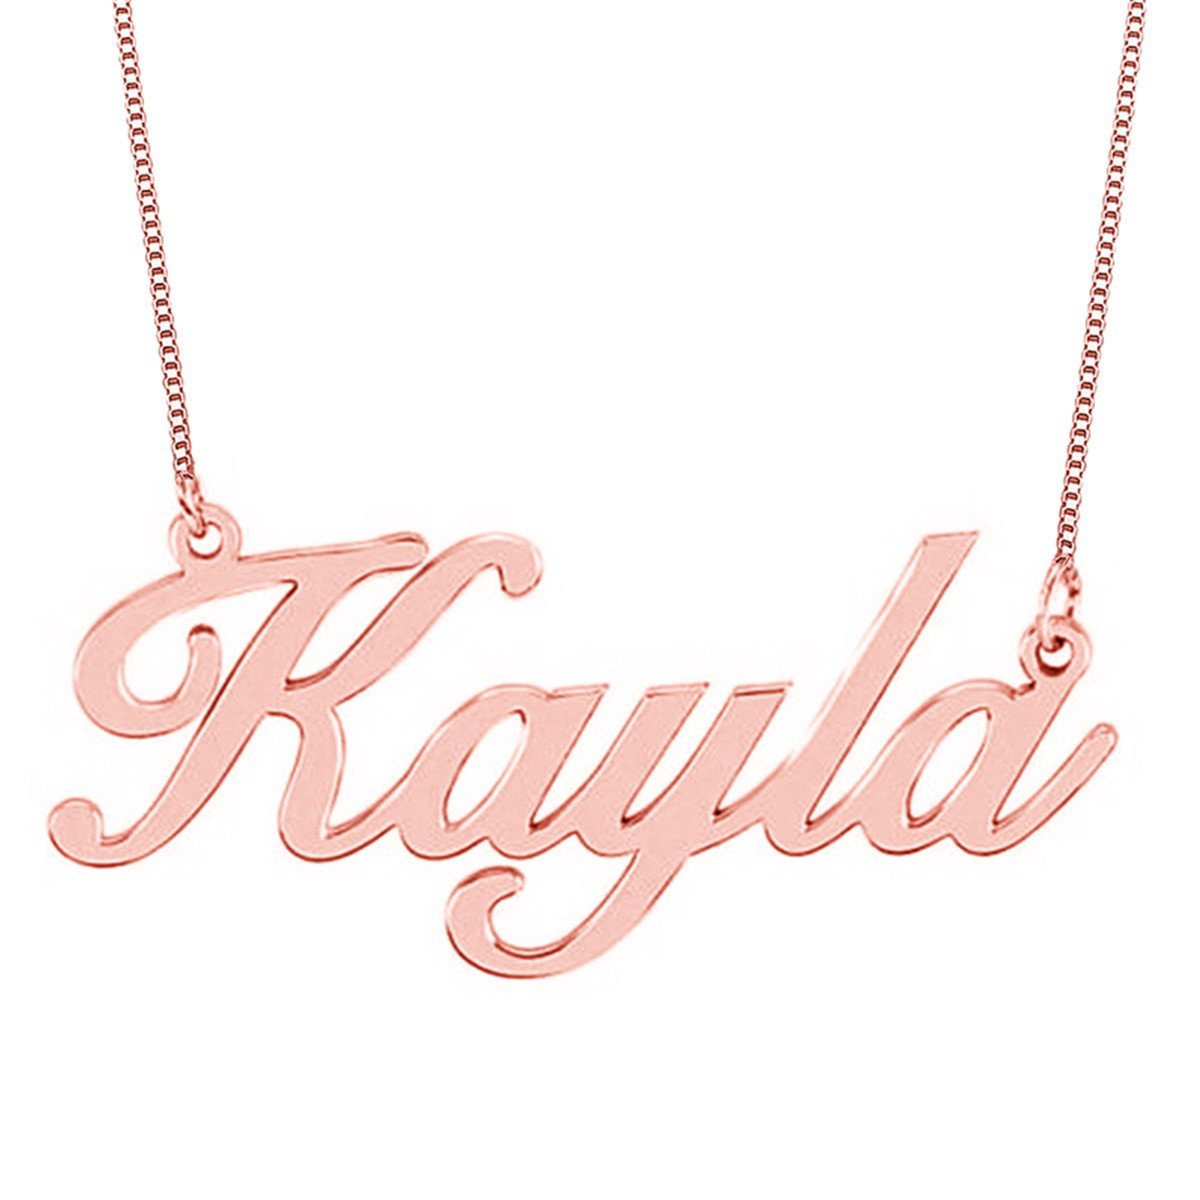 HACOOL Personalized Necklace, Custom Name Necklaces Rose Gold Pendant for her Thanksgiving Day Birthday Gift